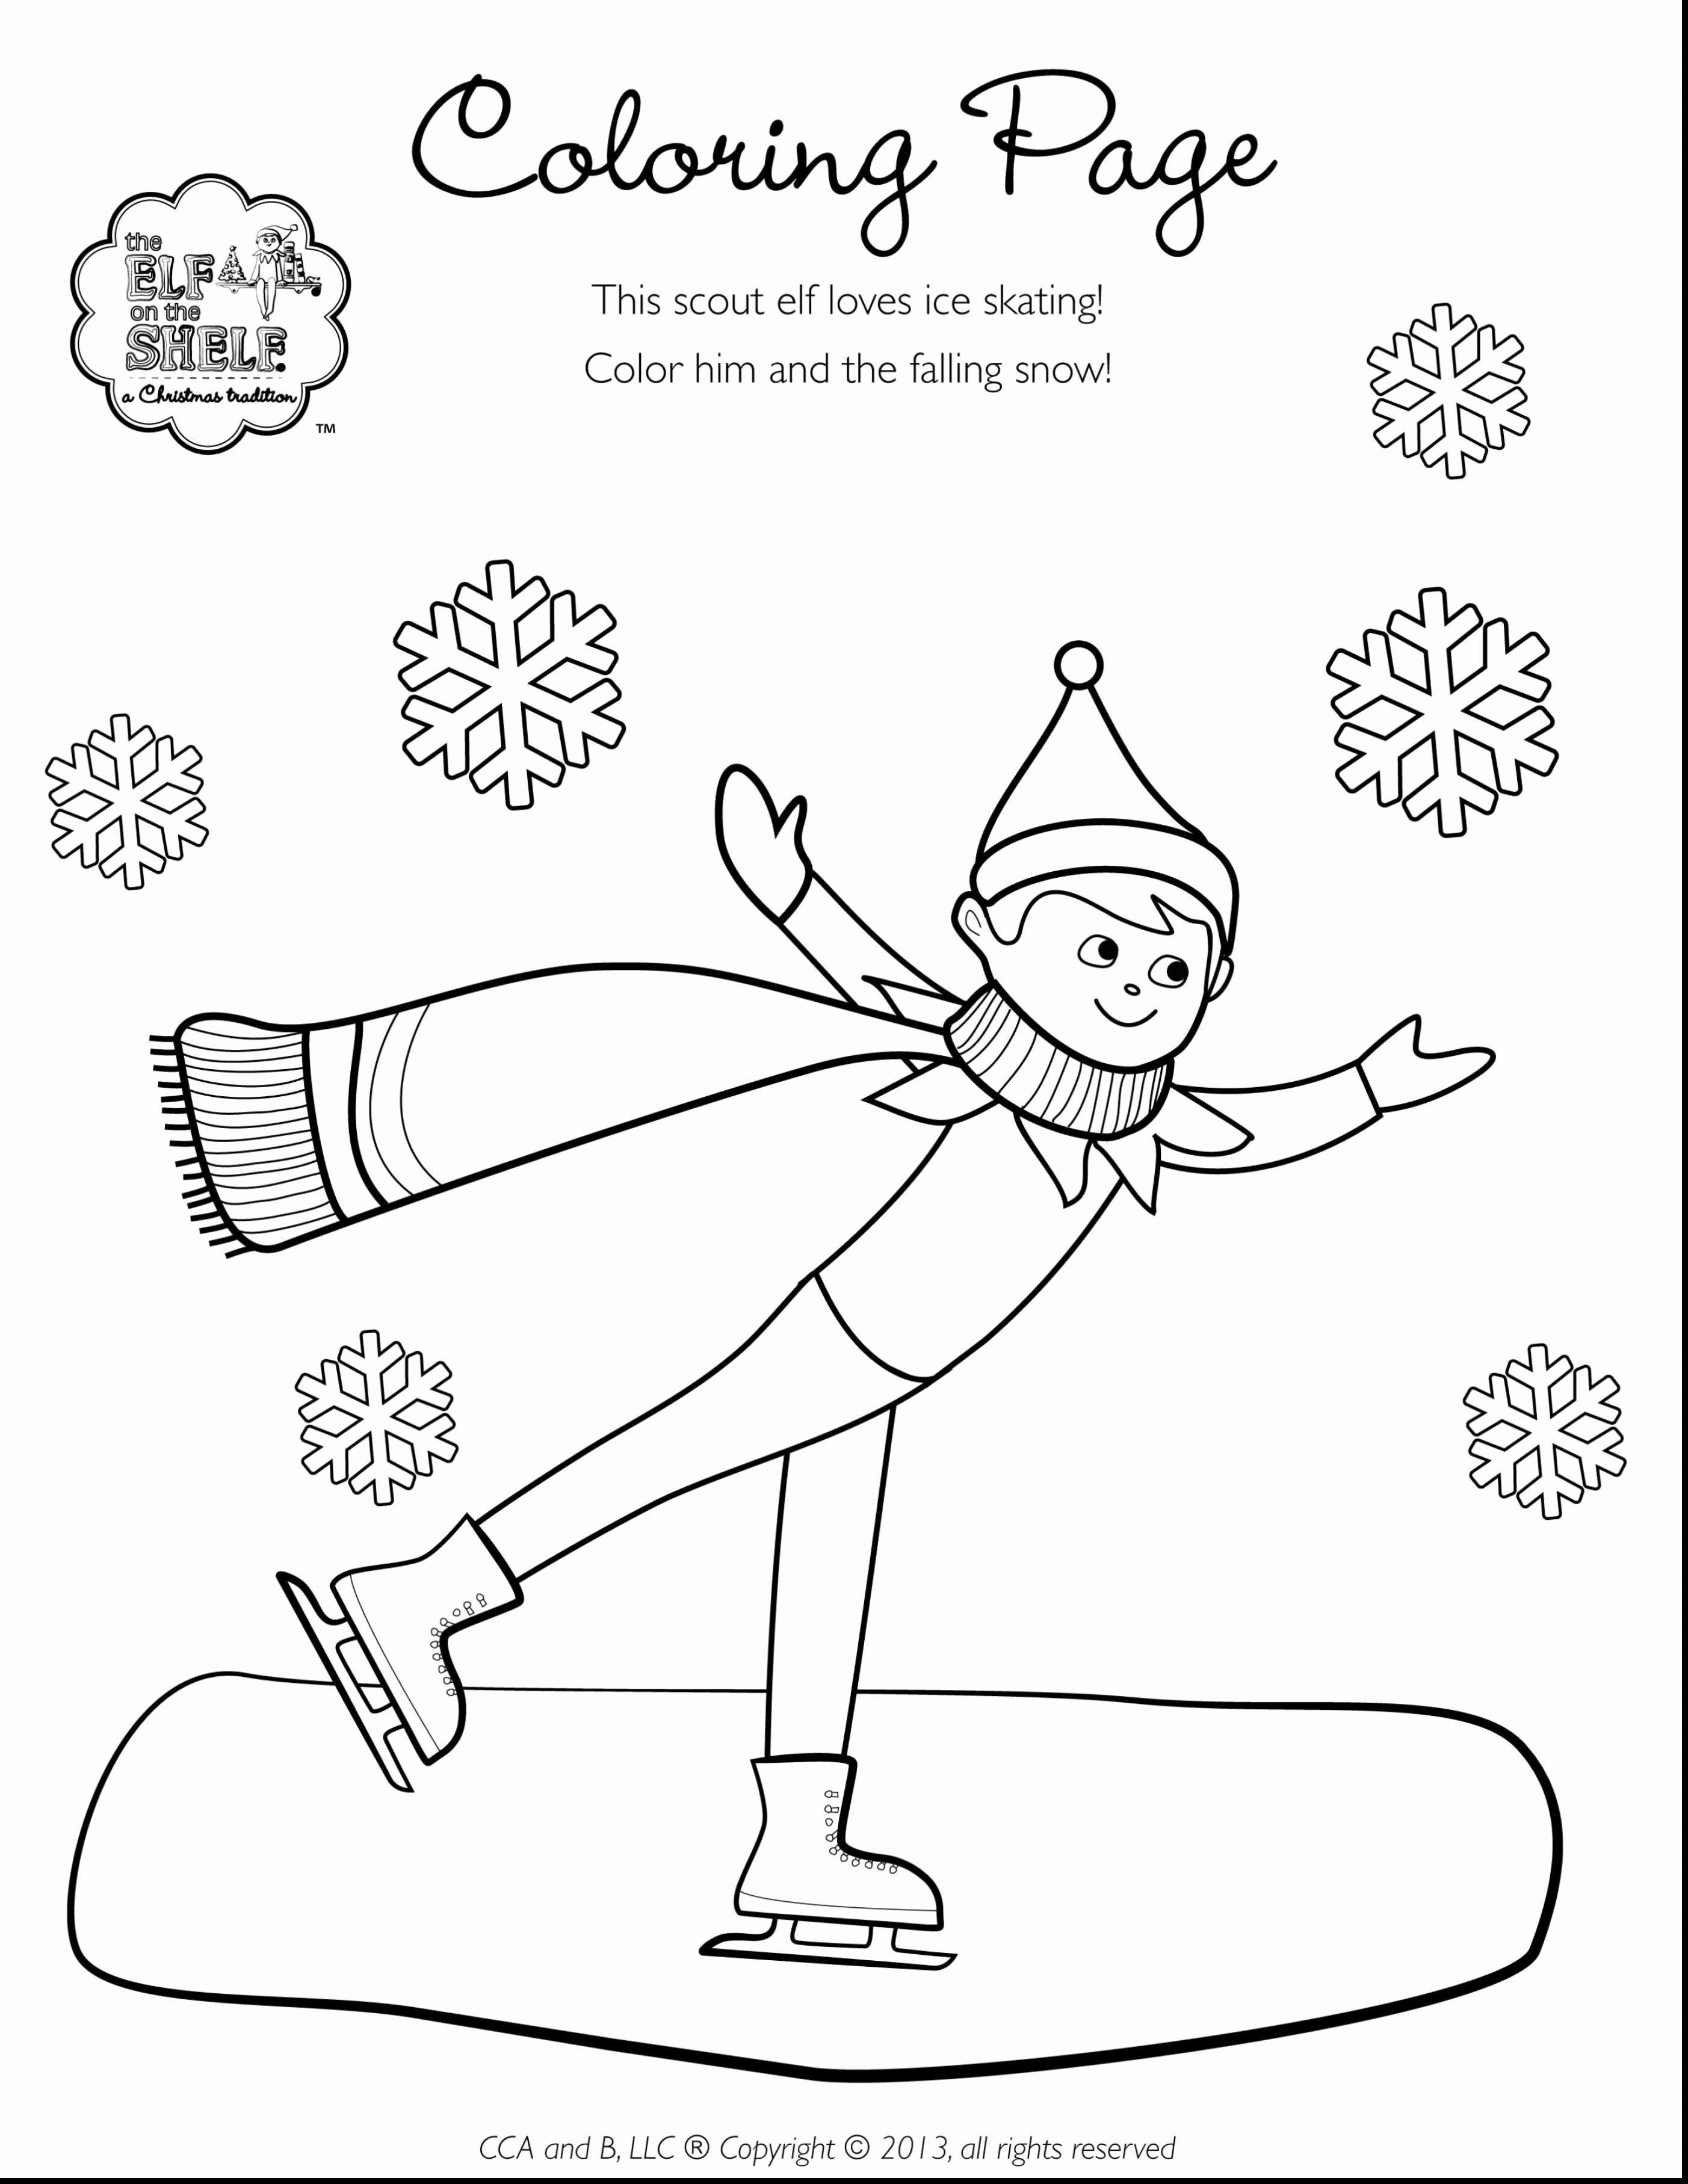 Elf on the Shelf Coloring page | Elf on the self, Christmas elf ... | 3630x2805